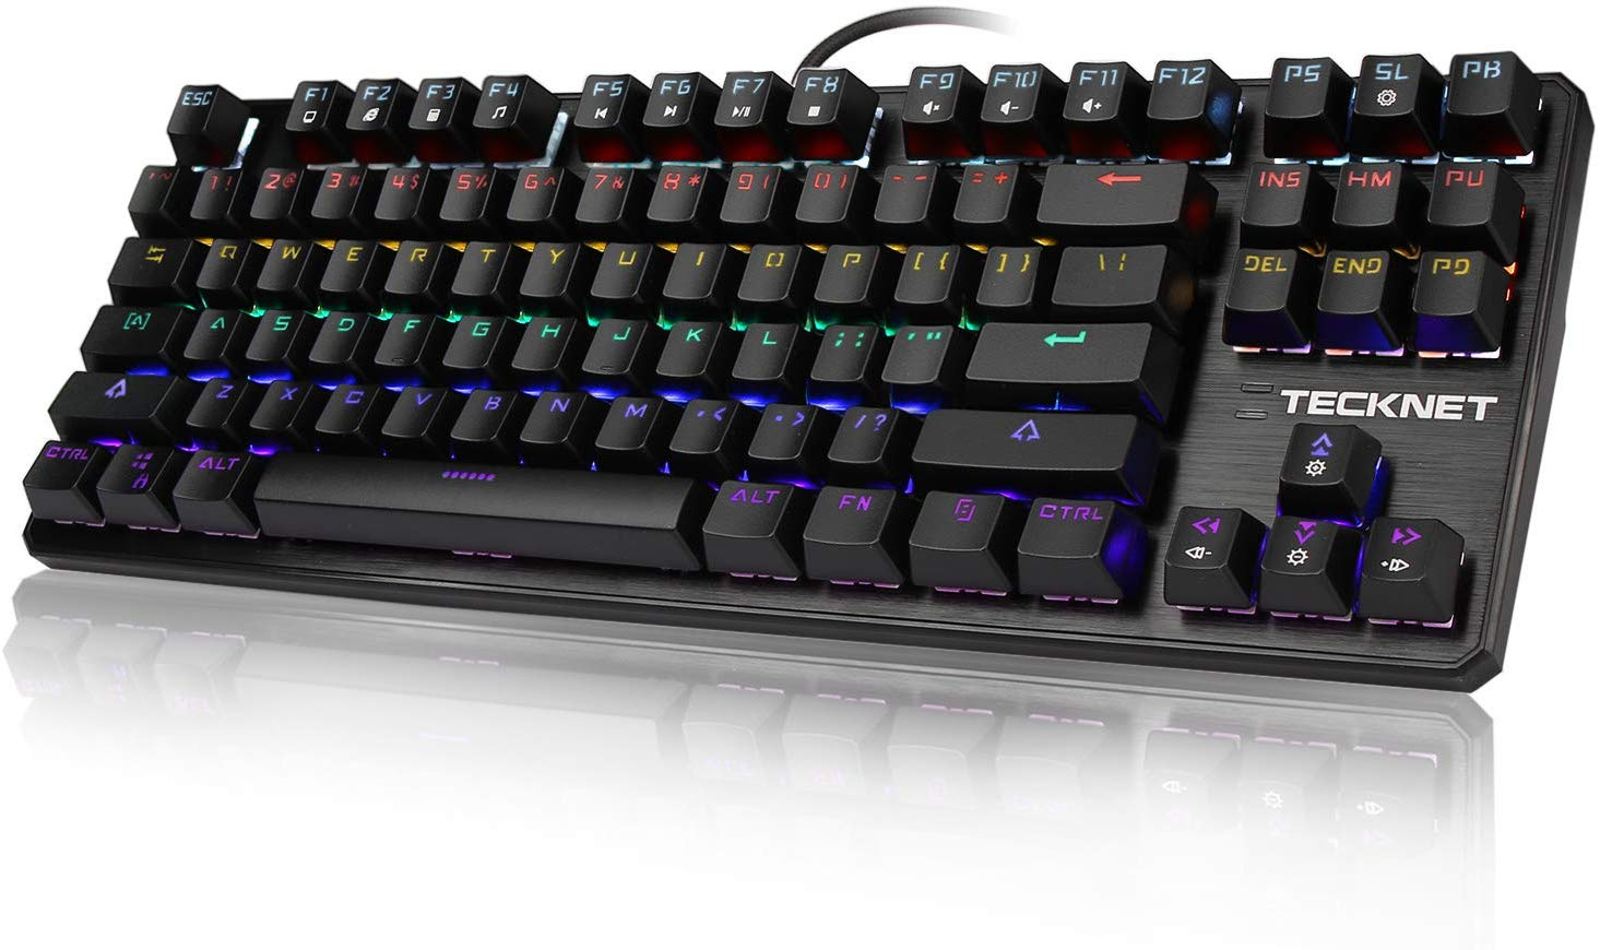 TeckNet Wired Rainbow Backlit Mechanical Keyboard with Use 50% off Promo Code : TeckNetX705 + Click 10% off Coupon at checkout for additional 10% off.